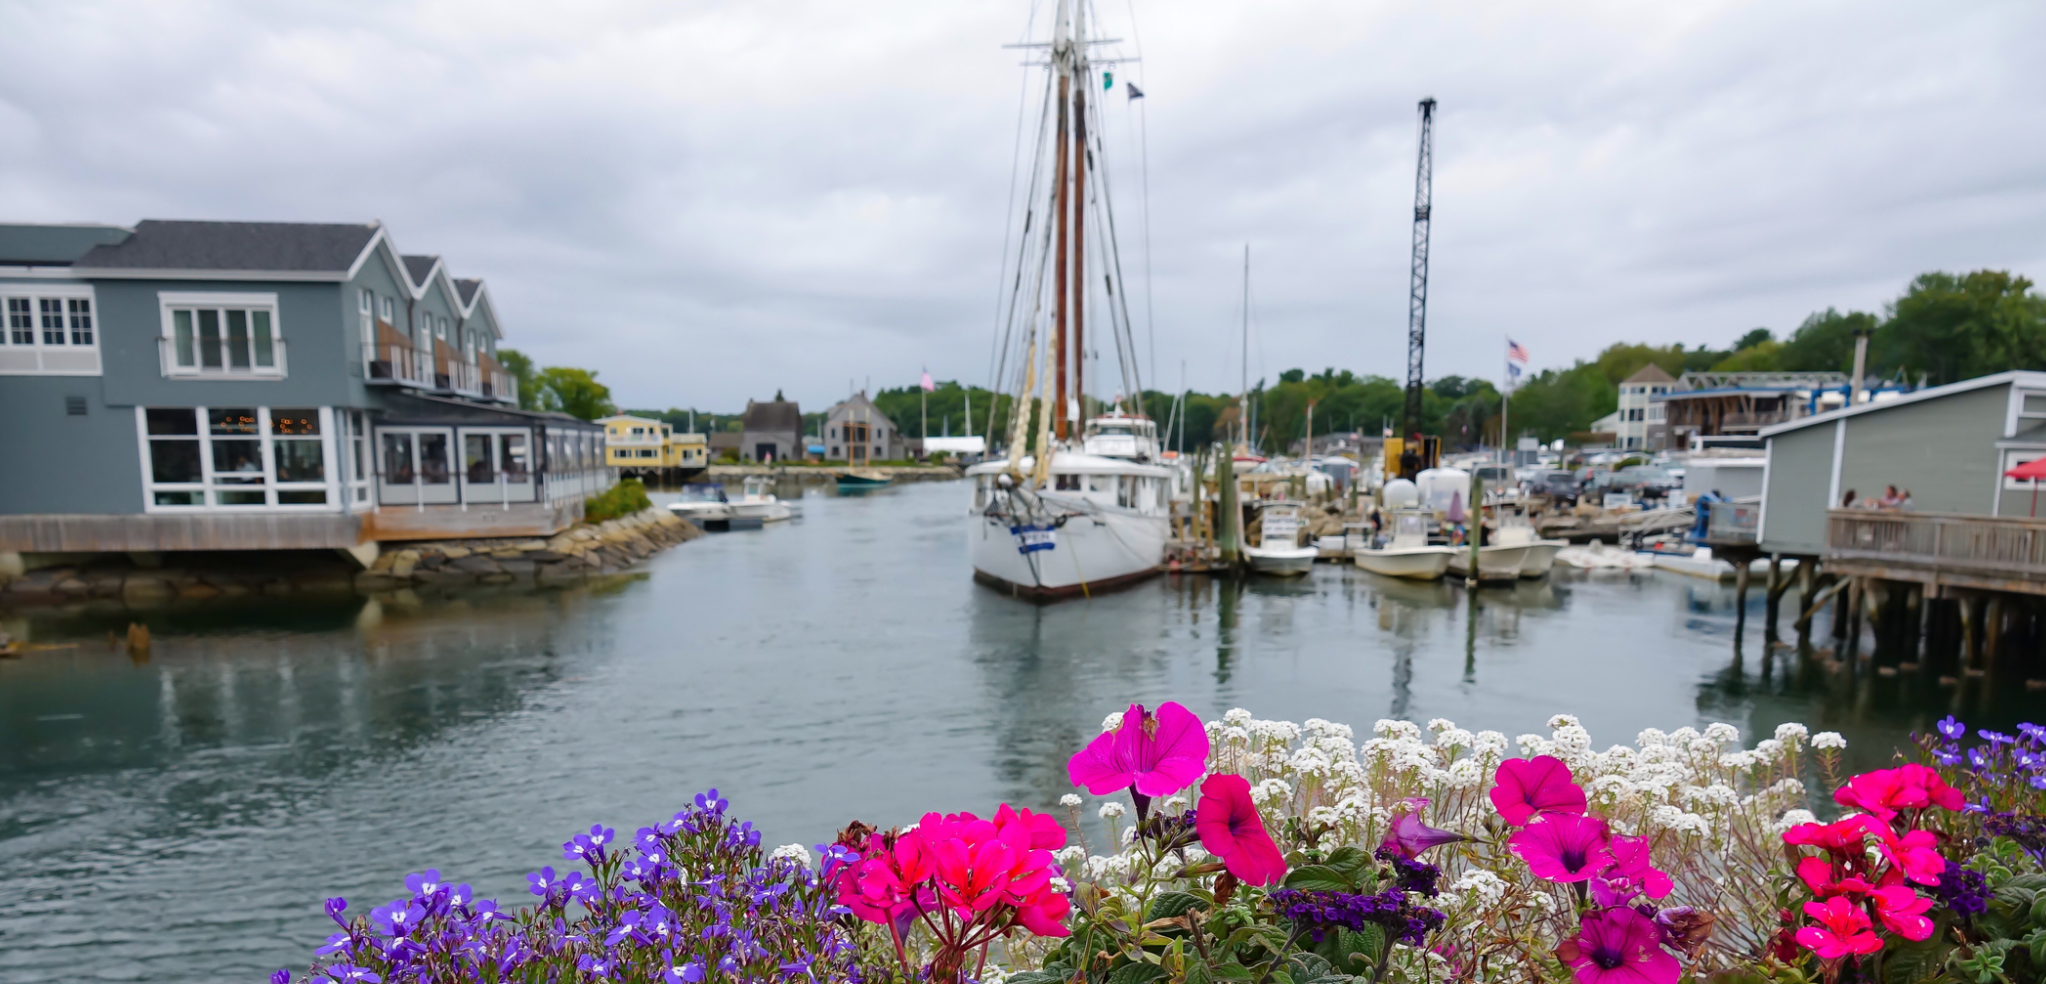 Plan A Trip To Kennebunkport, One Of Maine's Most Charming Historic Towns